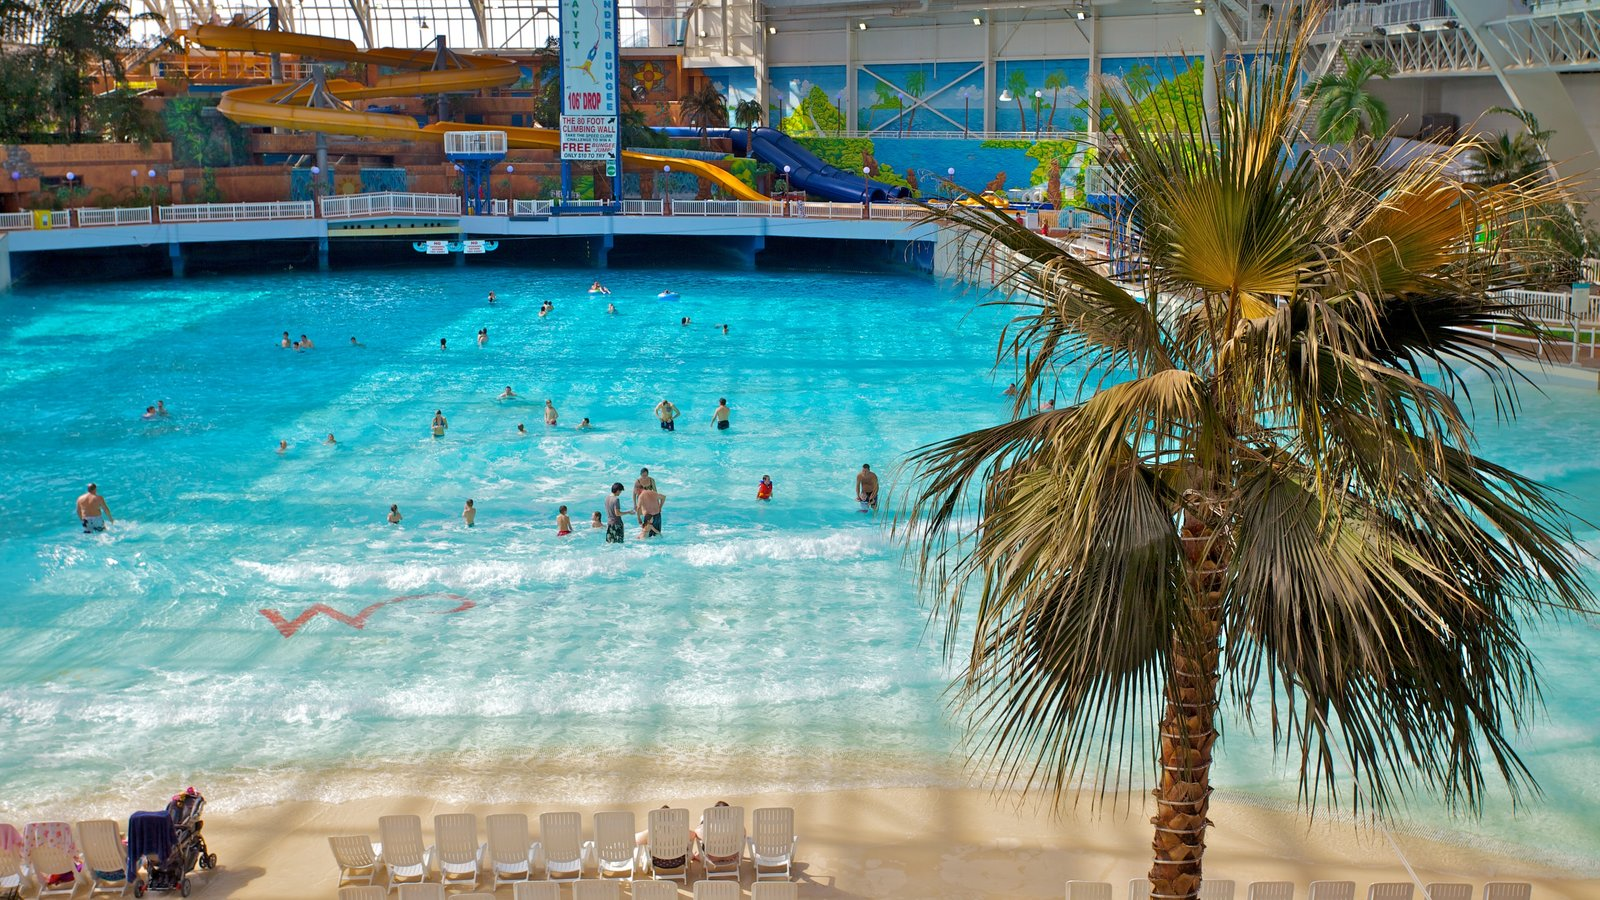 West Edmonton Mall featuring a pool, a water park and shopping